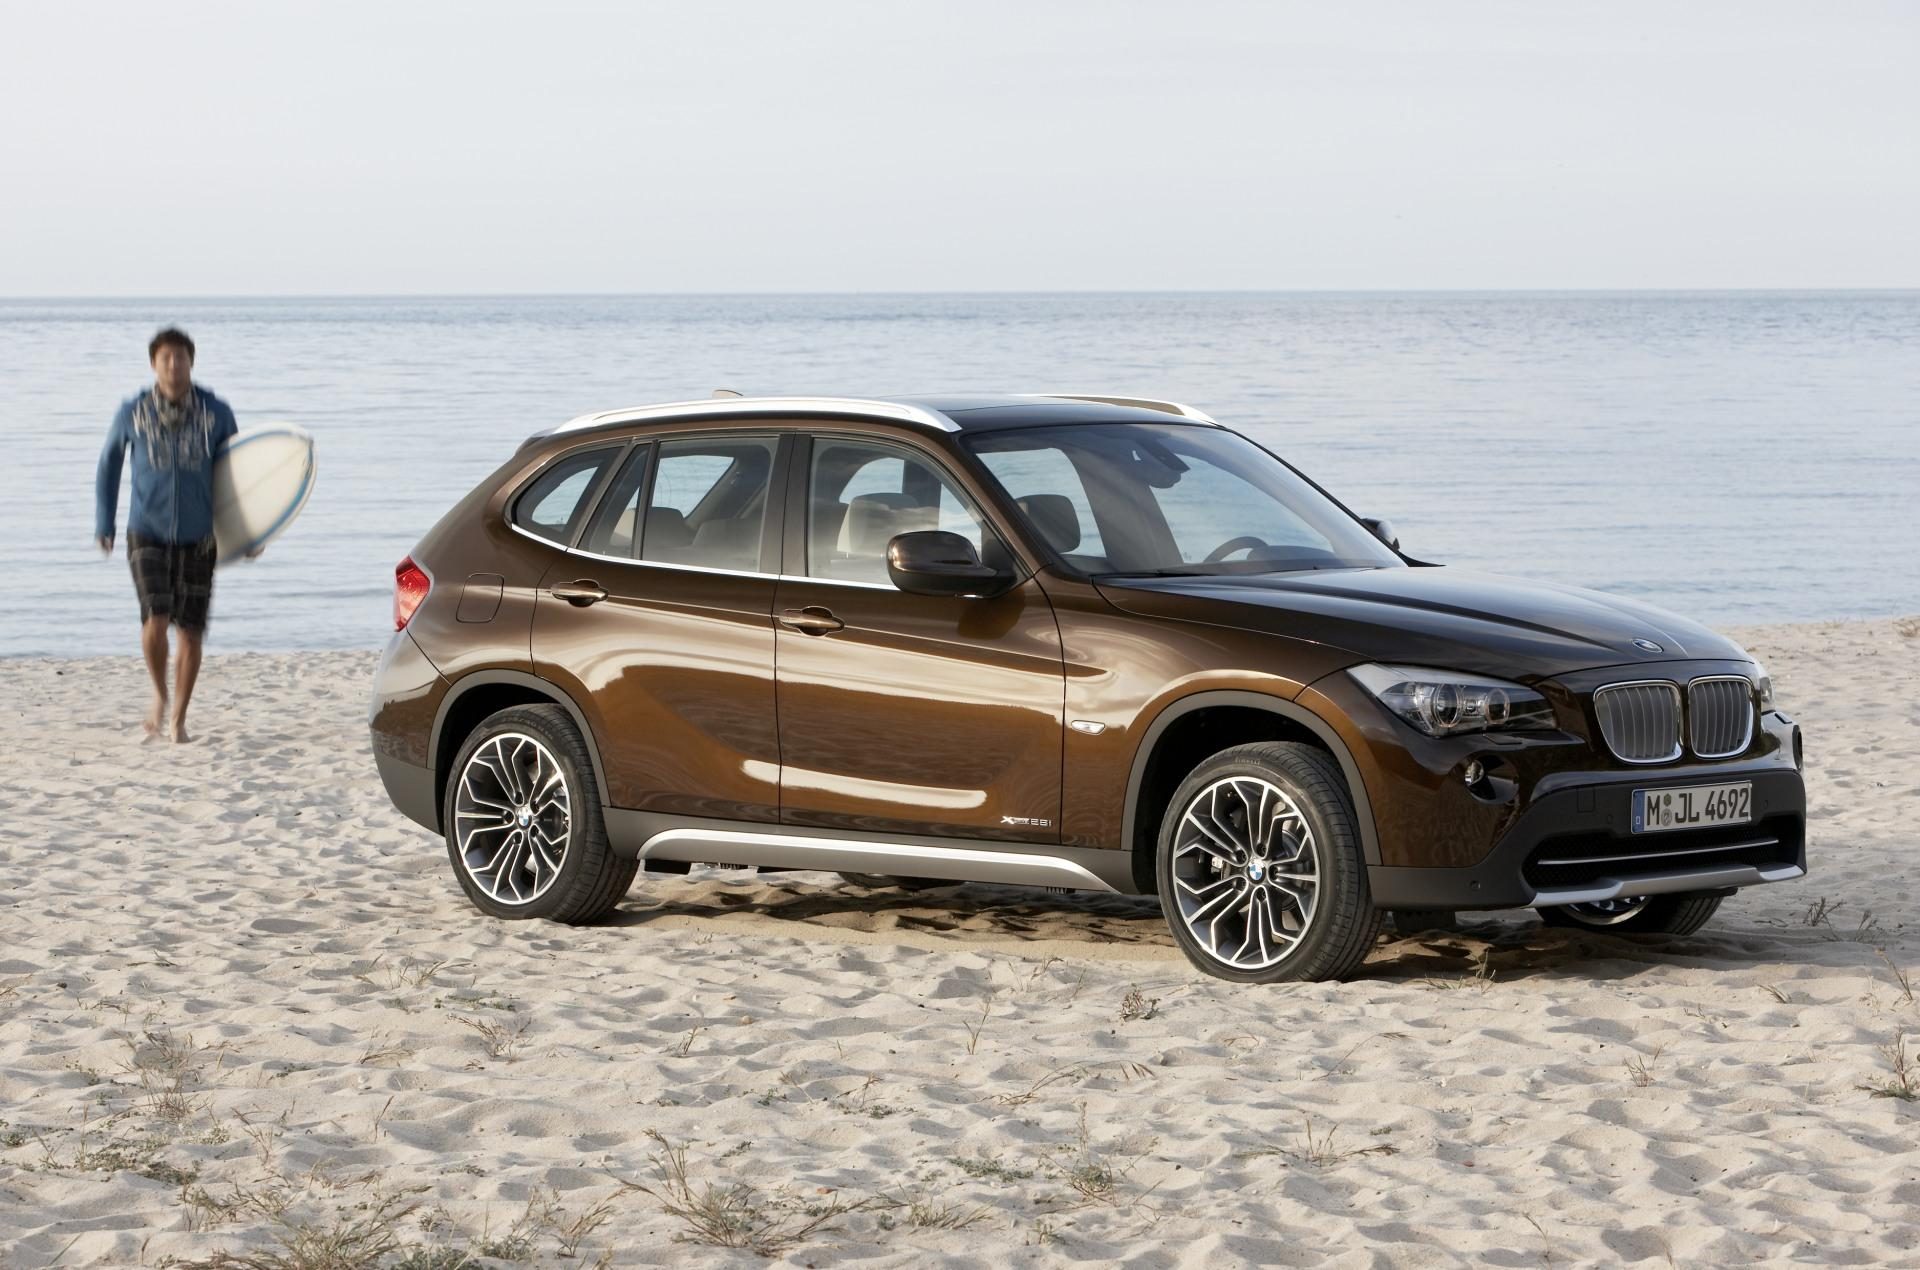 2010 BMW X1 News And Information